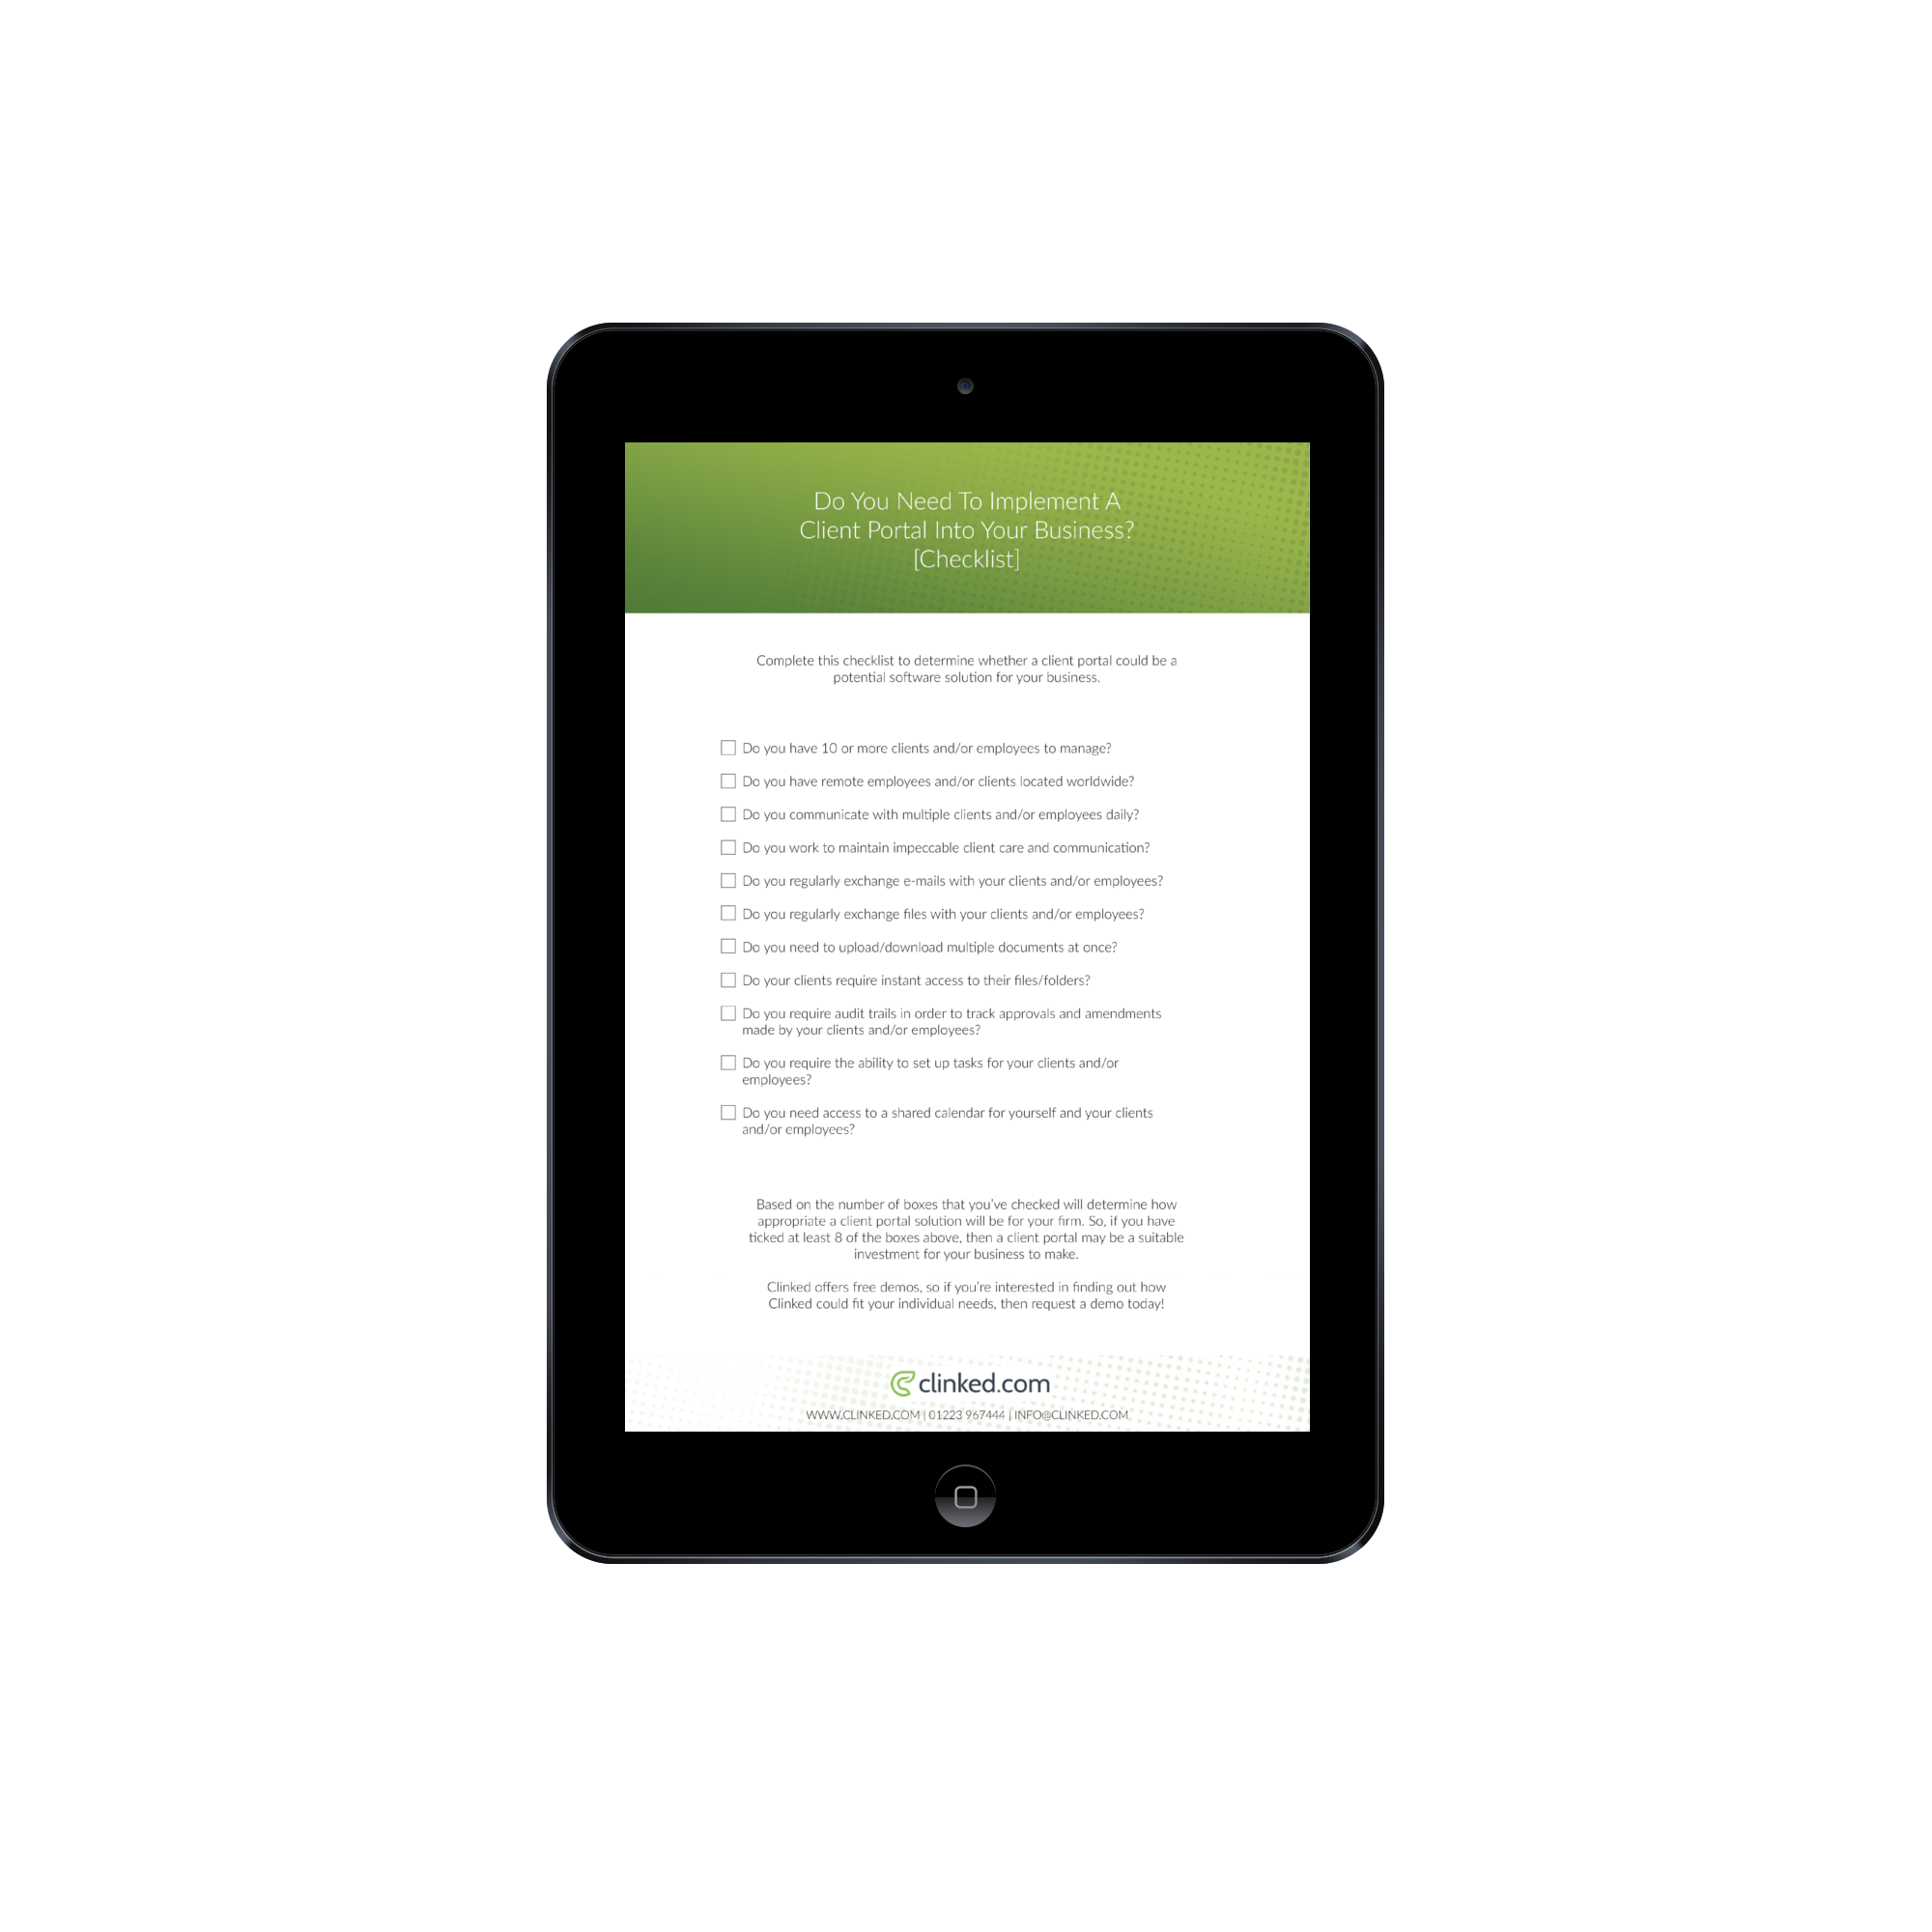 Clinked-ipad-checklist-preview.png